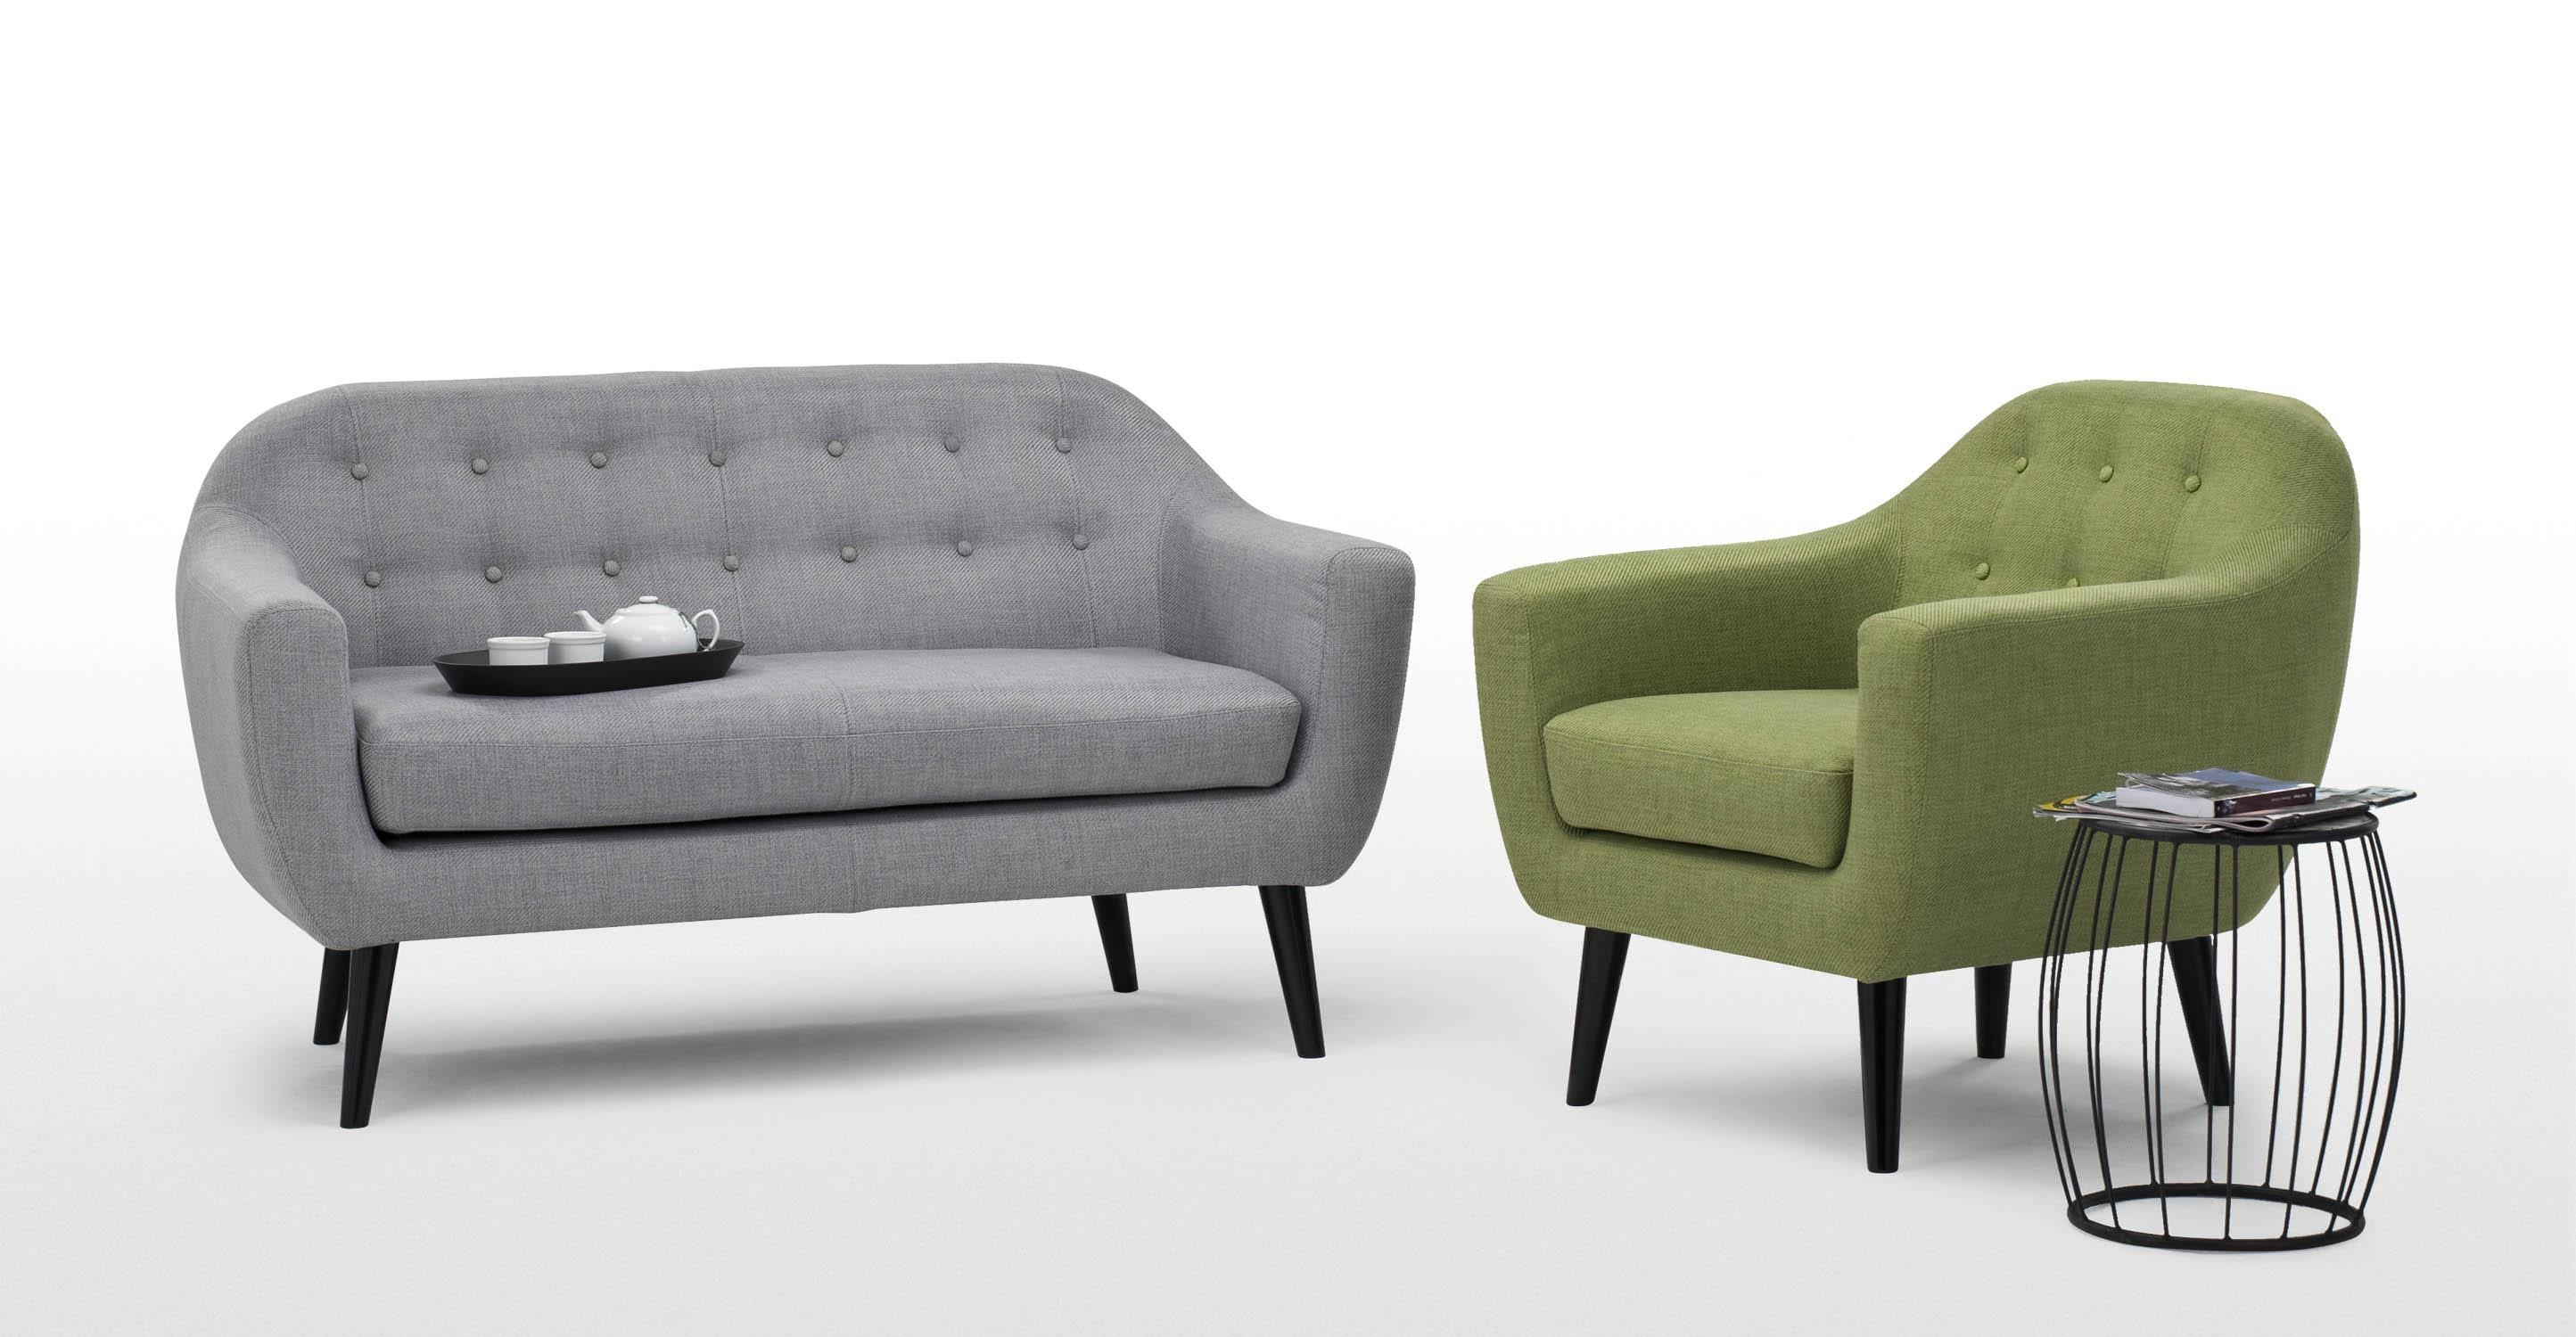 Ritchie 2 Seater Sofa In Pearl Grey | Made With Regard To Grey Sofa Chairs (Image 15 of 20)